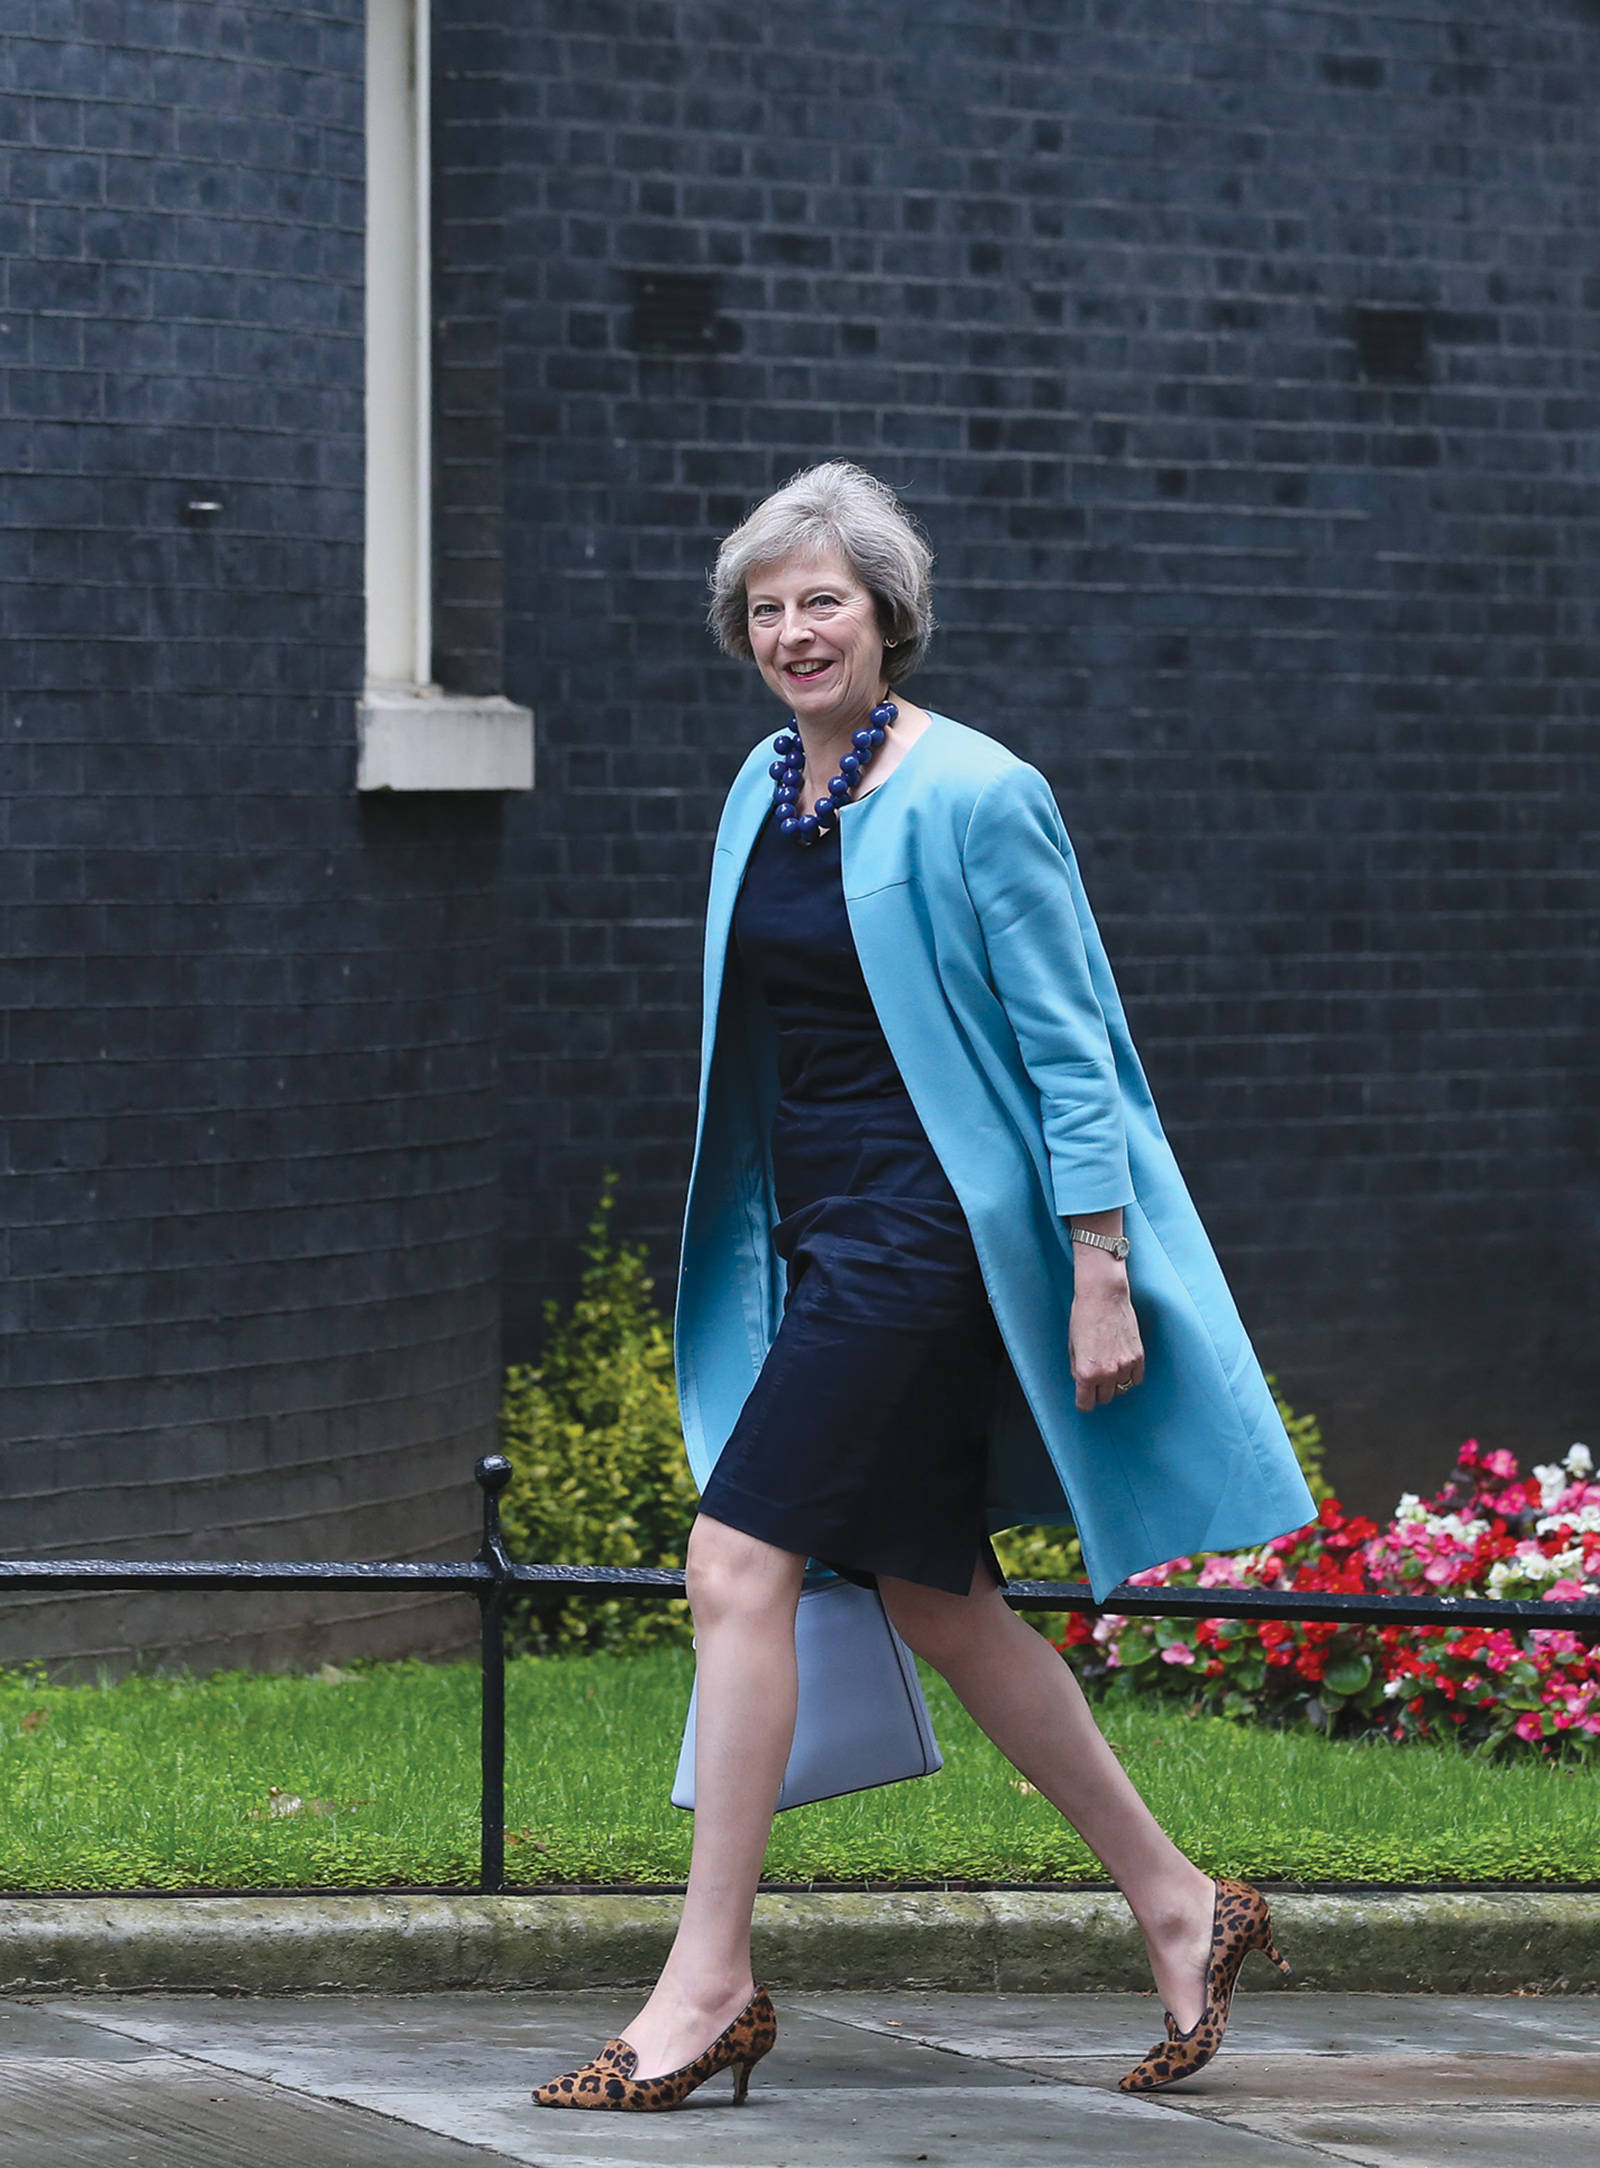 Theresa May, Britain's new prime minister, London, July 2016